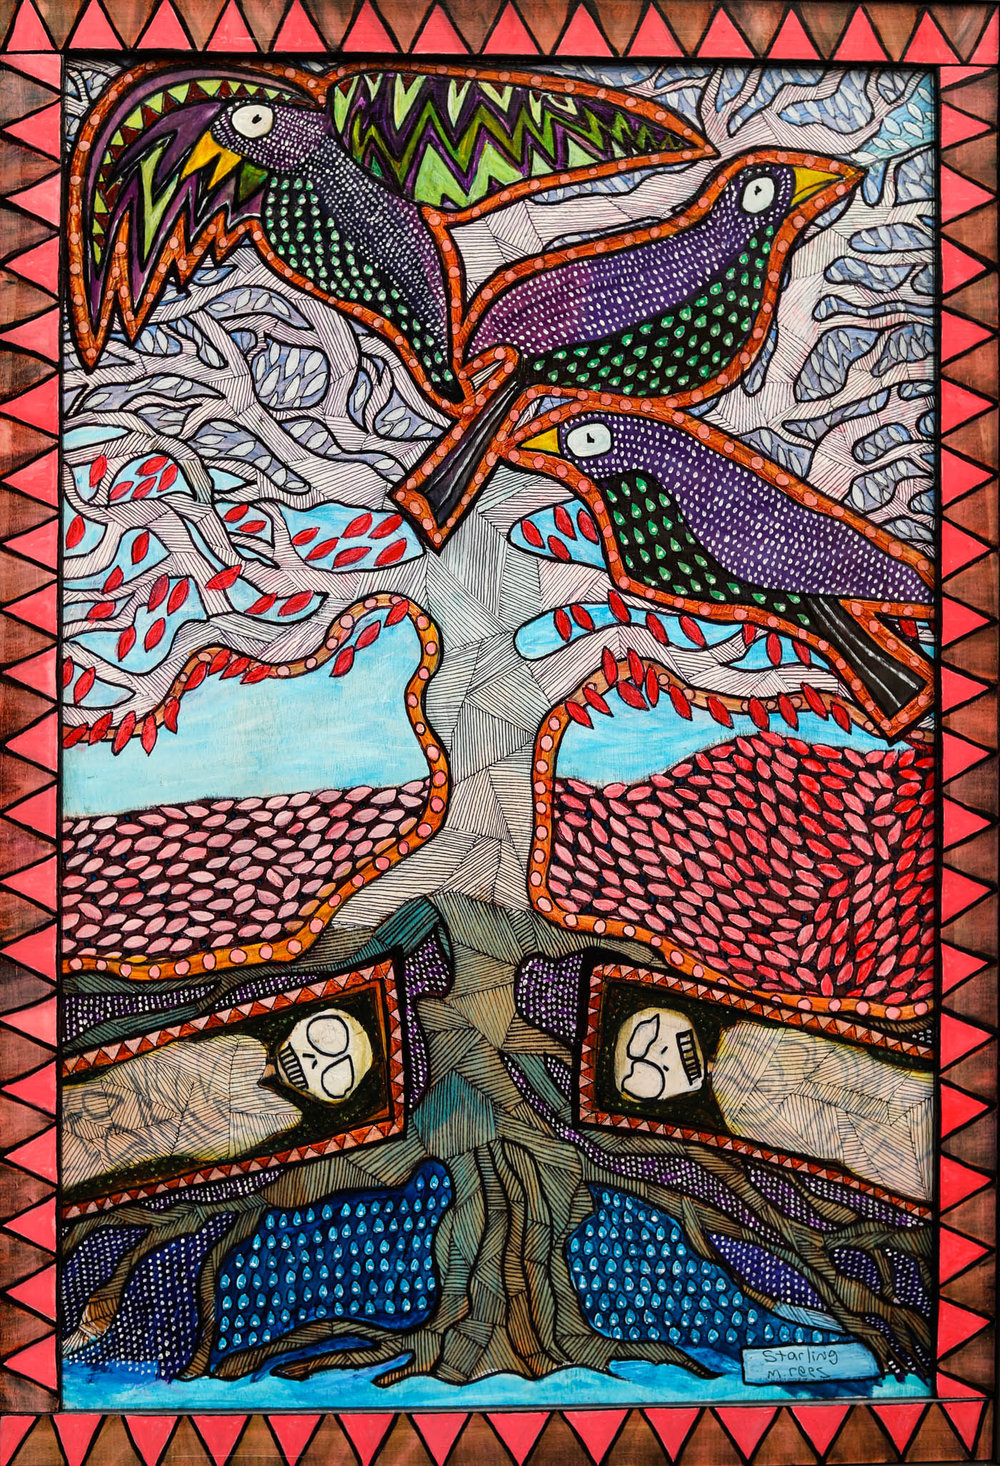 """Starling $900  After learning how trees in a forest will communicate with one another through their roots, I've become fascinated by what these old giants might be saying to one another. We are merely a blip on their timeline. I wonder if they even bother to discuss our presence at all. Gouache and ink on wood. Approx. 25 3/4"""" x 17 3/4""""."""